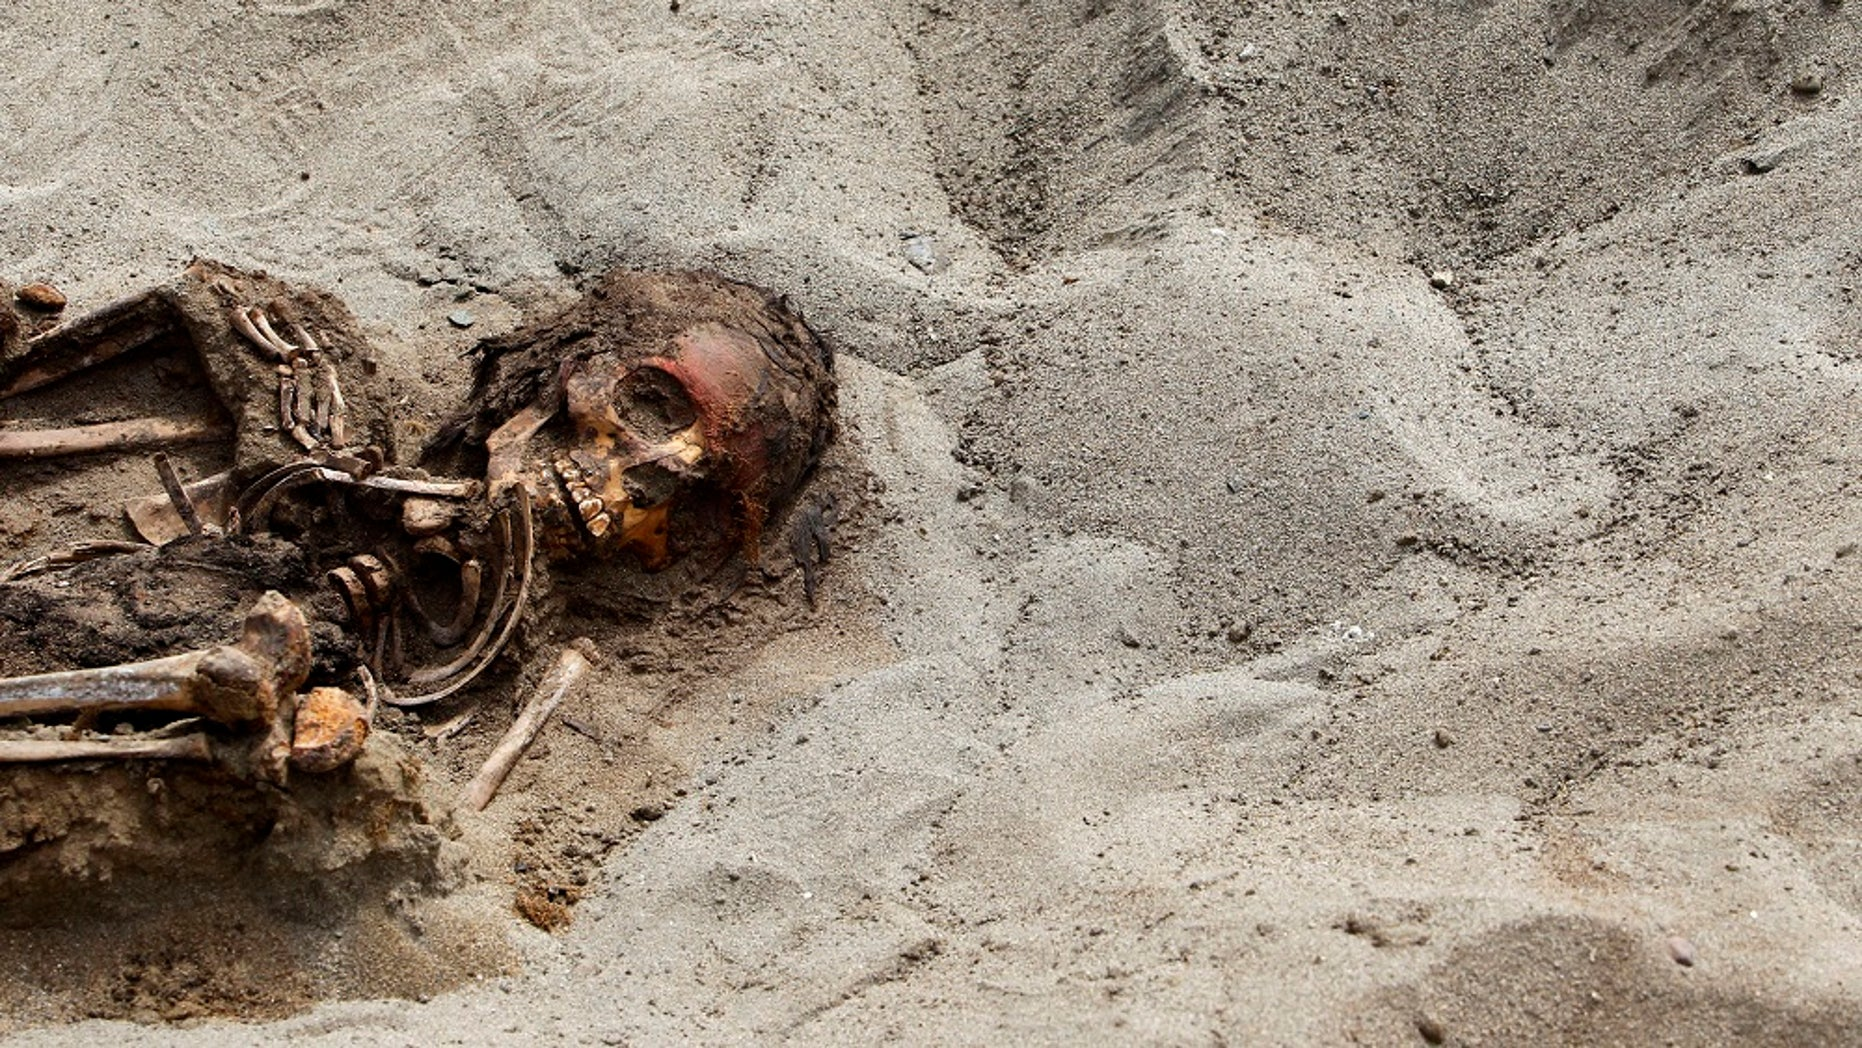 Archaeologists found the remains of 42 children and more than 70 young llamas in 2011, near Trujillo, Peru. By 2016 the number had grown to 140 children and 200 young llamas.